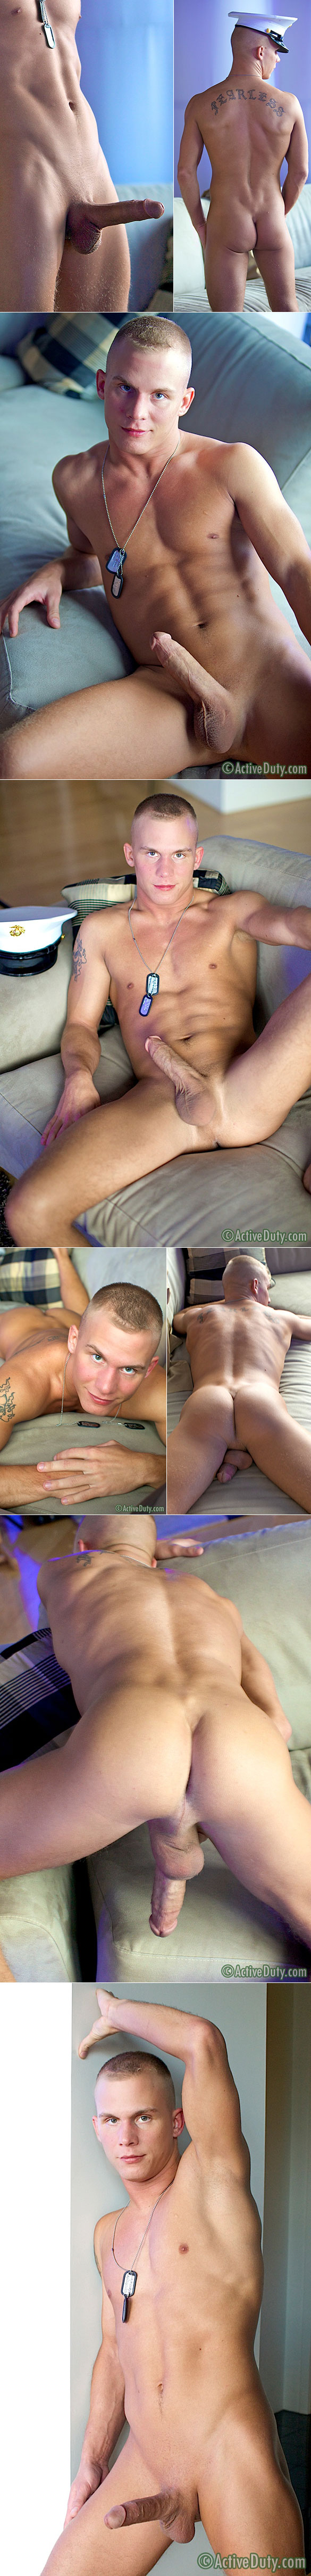 Active Duty: Marine Shawn busts a nut